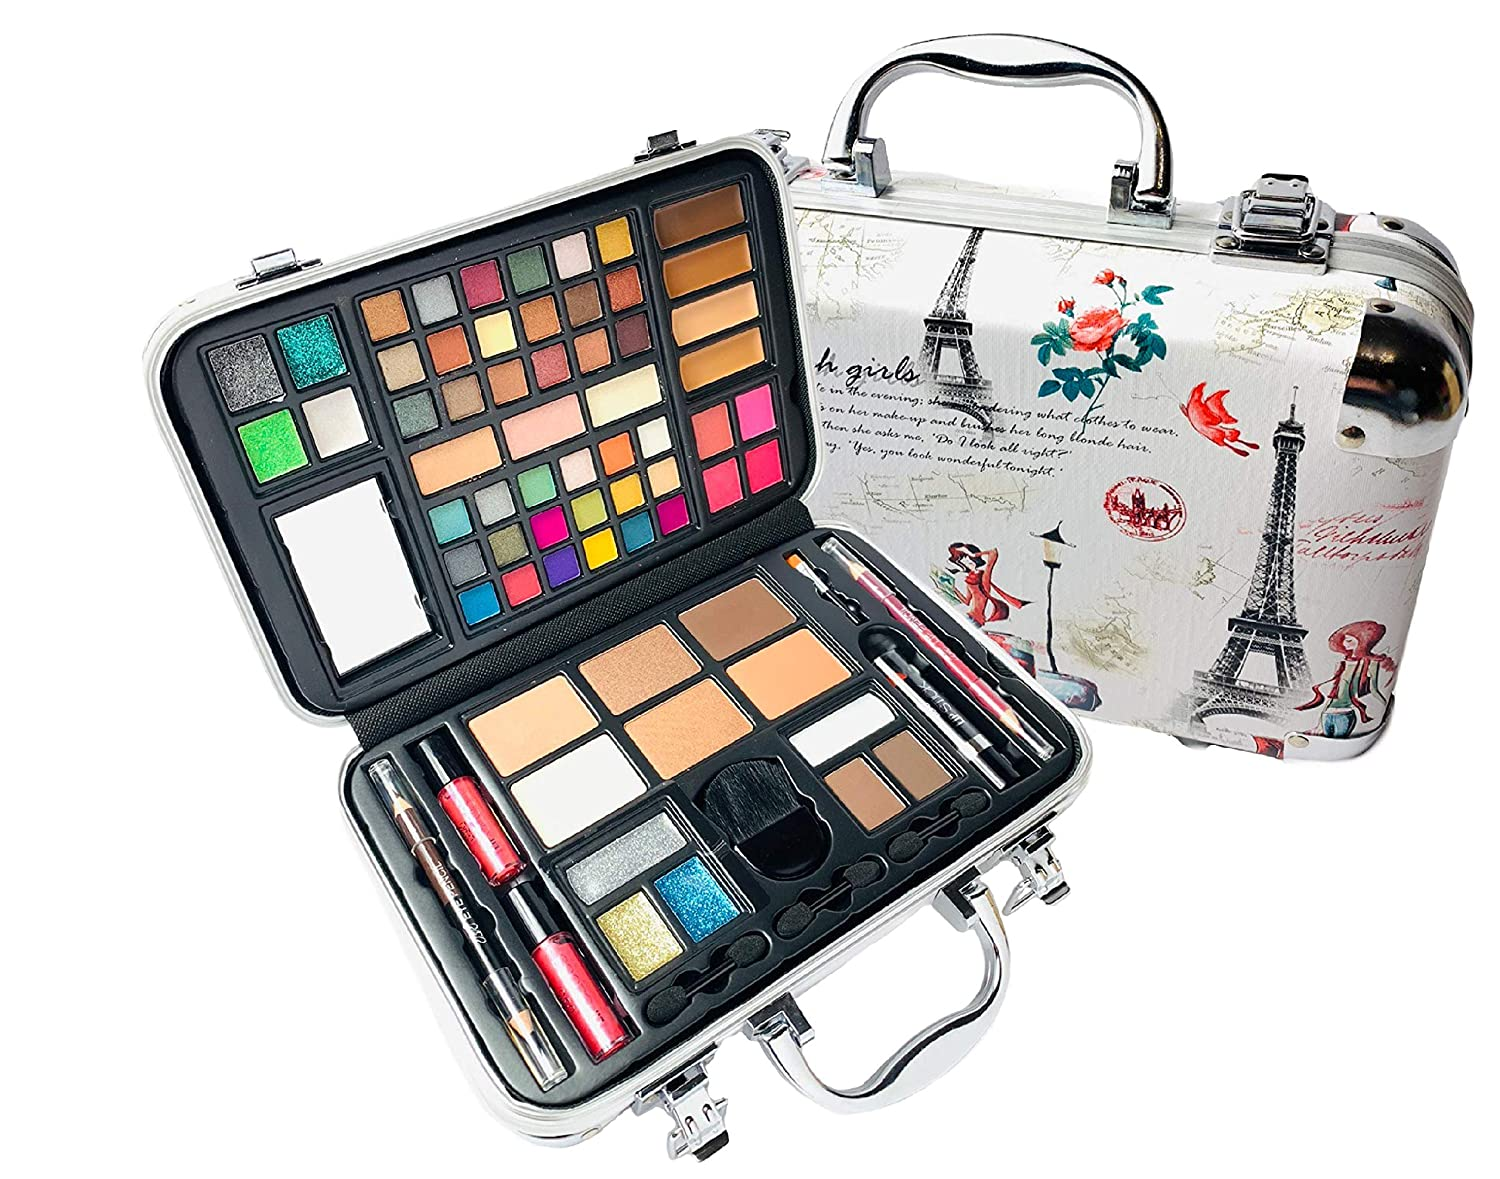 BR All In One Makeup Kit (Eyeshadow, Blushes, Powder, Lipstick & More) Holiday Gift Set (Pink)